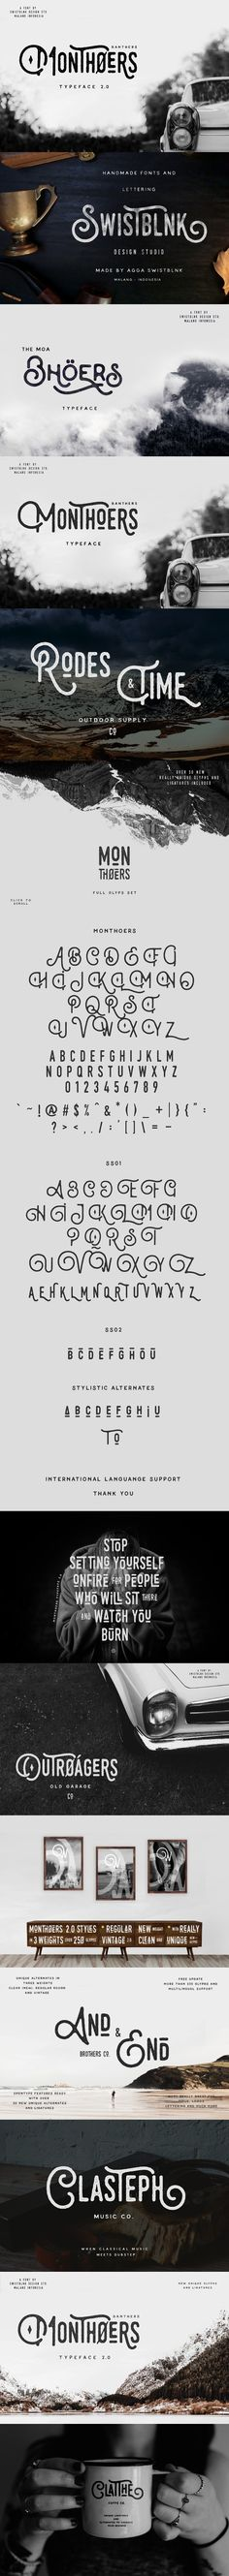 Monthoers Typeface 2.0 - New Update. Fonts. $17.00